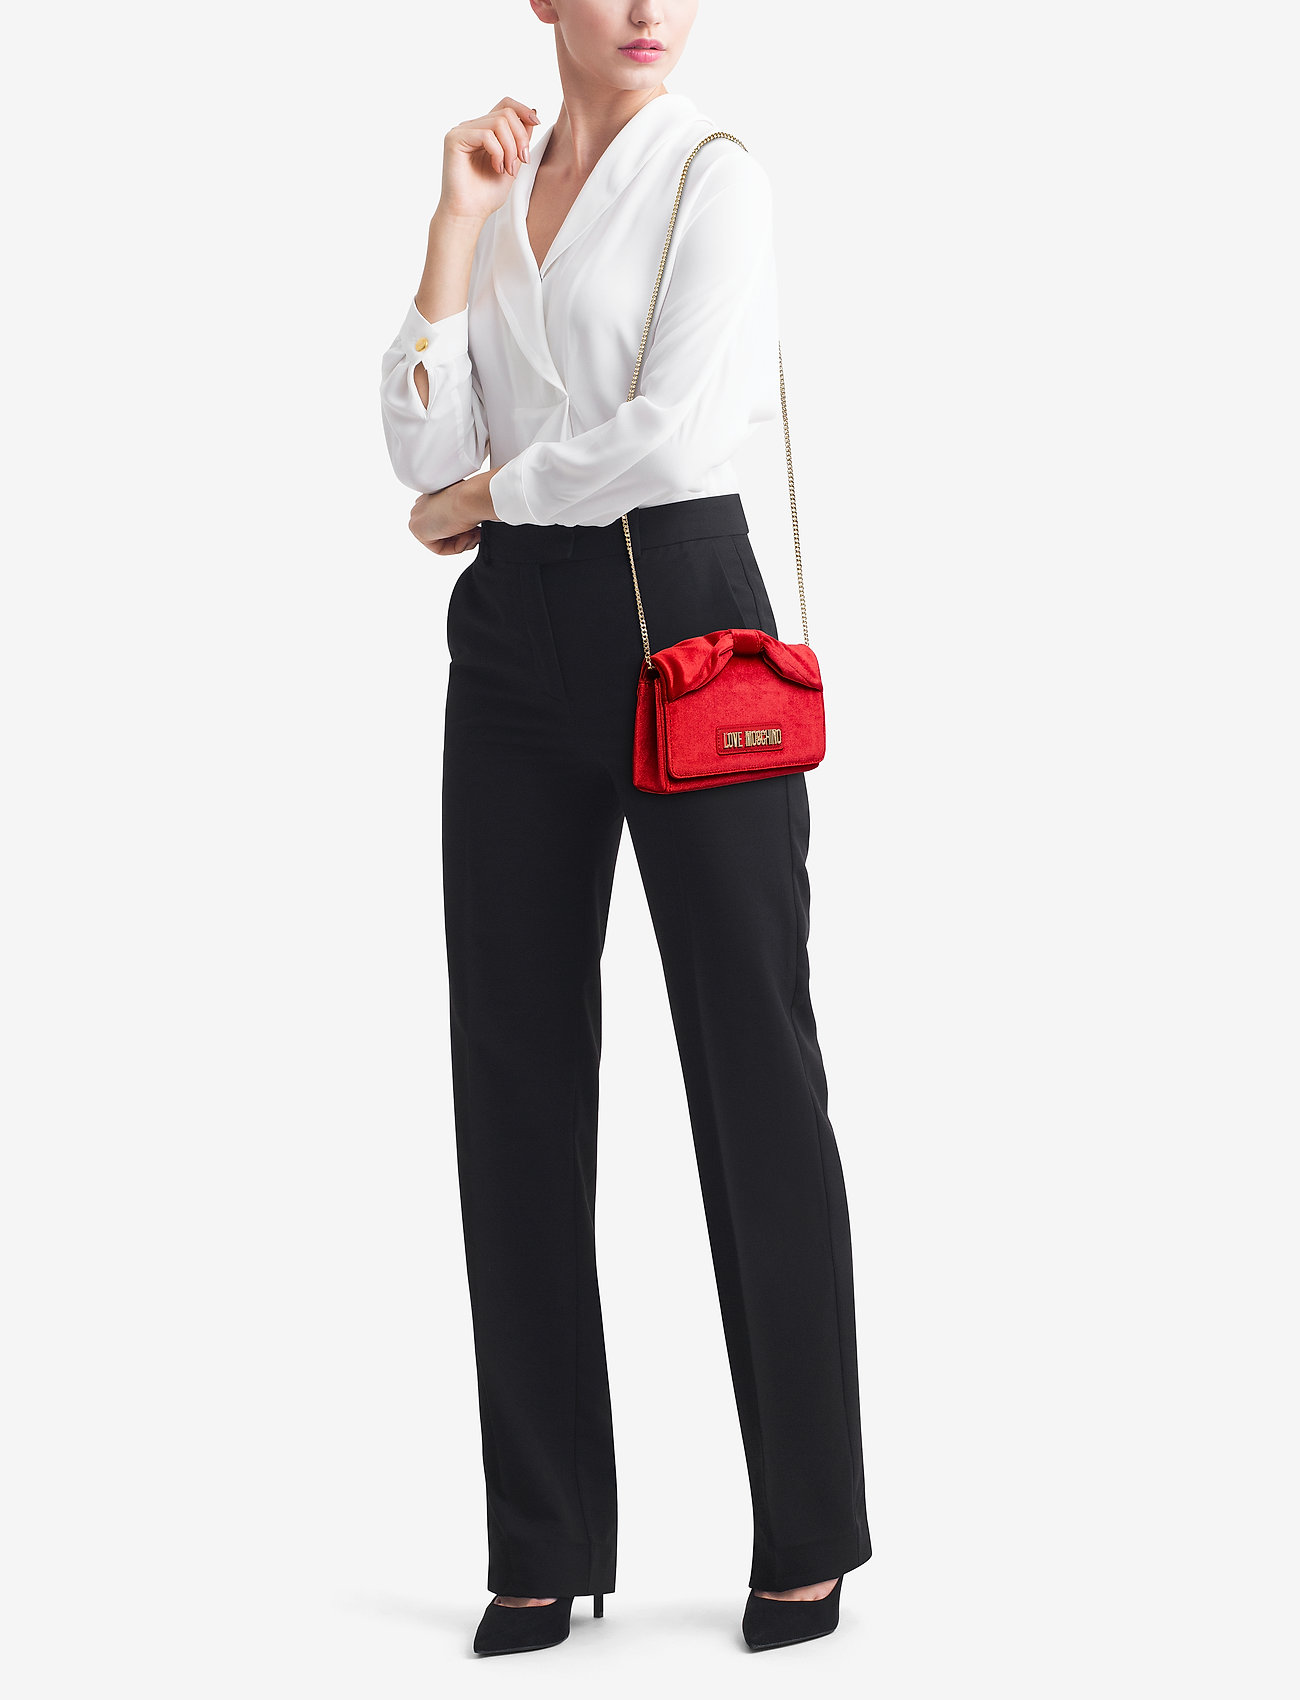 Love Moschino Bags EVENING BAG - RED